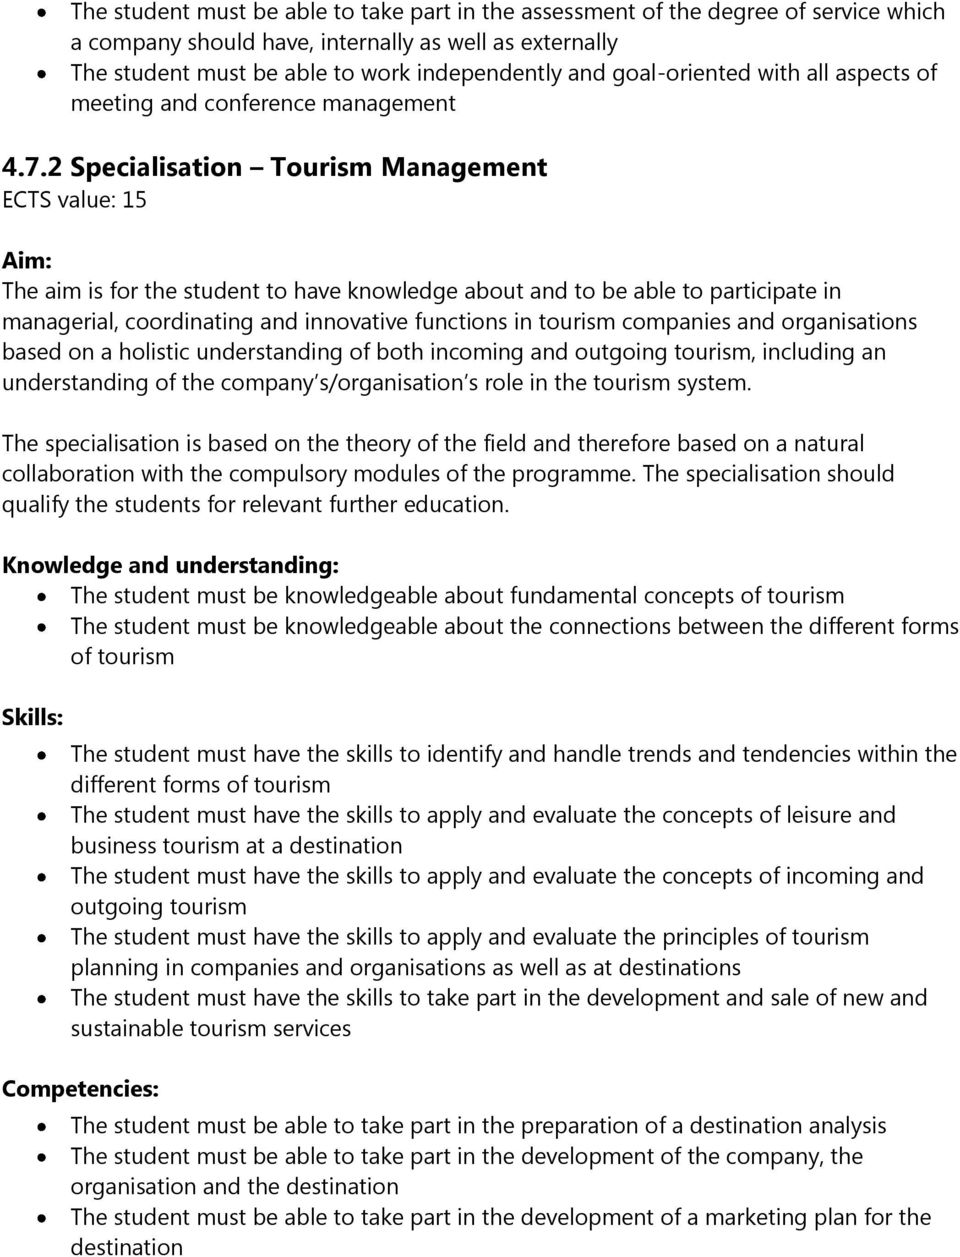 2 Specialisation Tourism Management ECTS value: 15 Aim: The aim is for the student to have knowledge about and to be able to participate in managerial, coordinating and innovative functions in